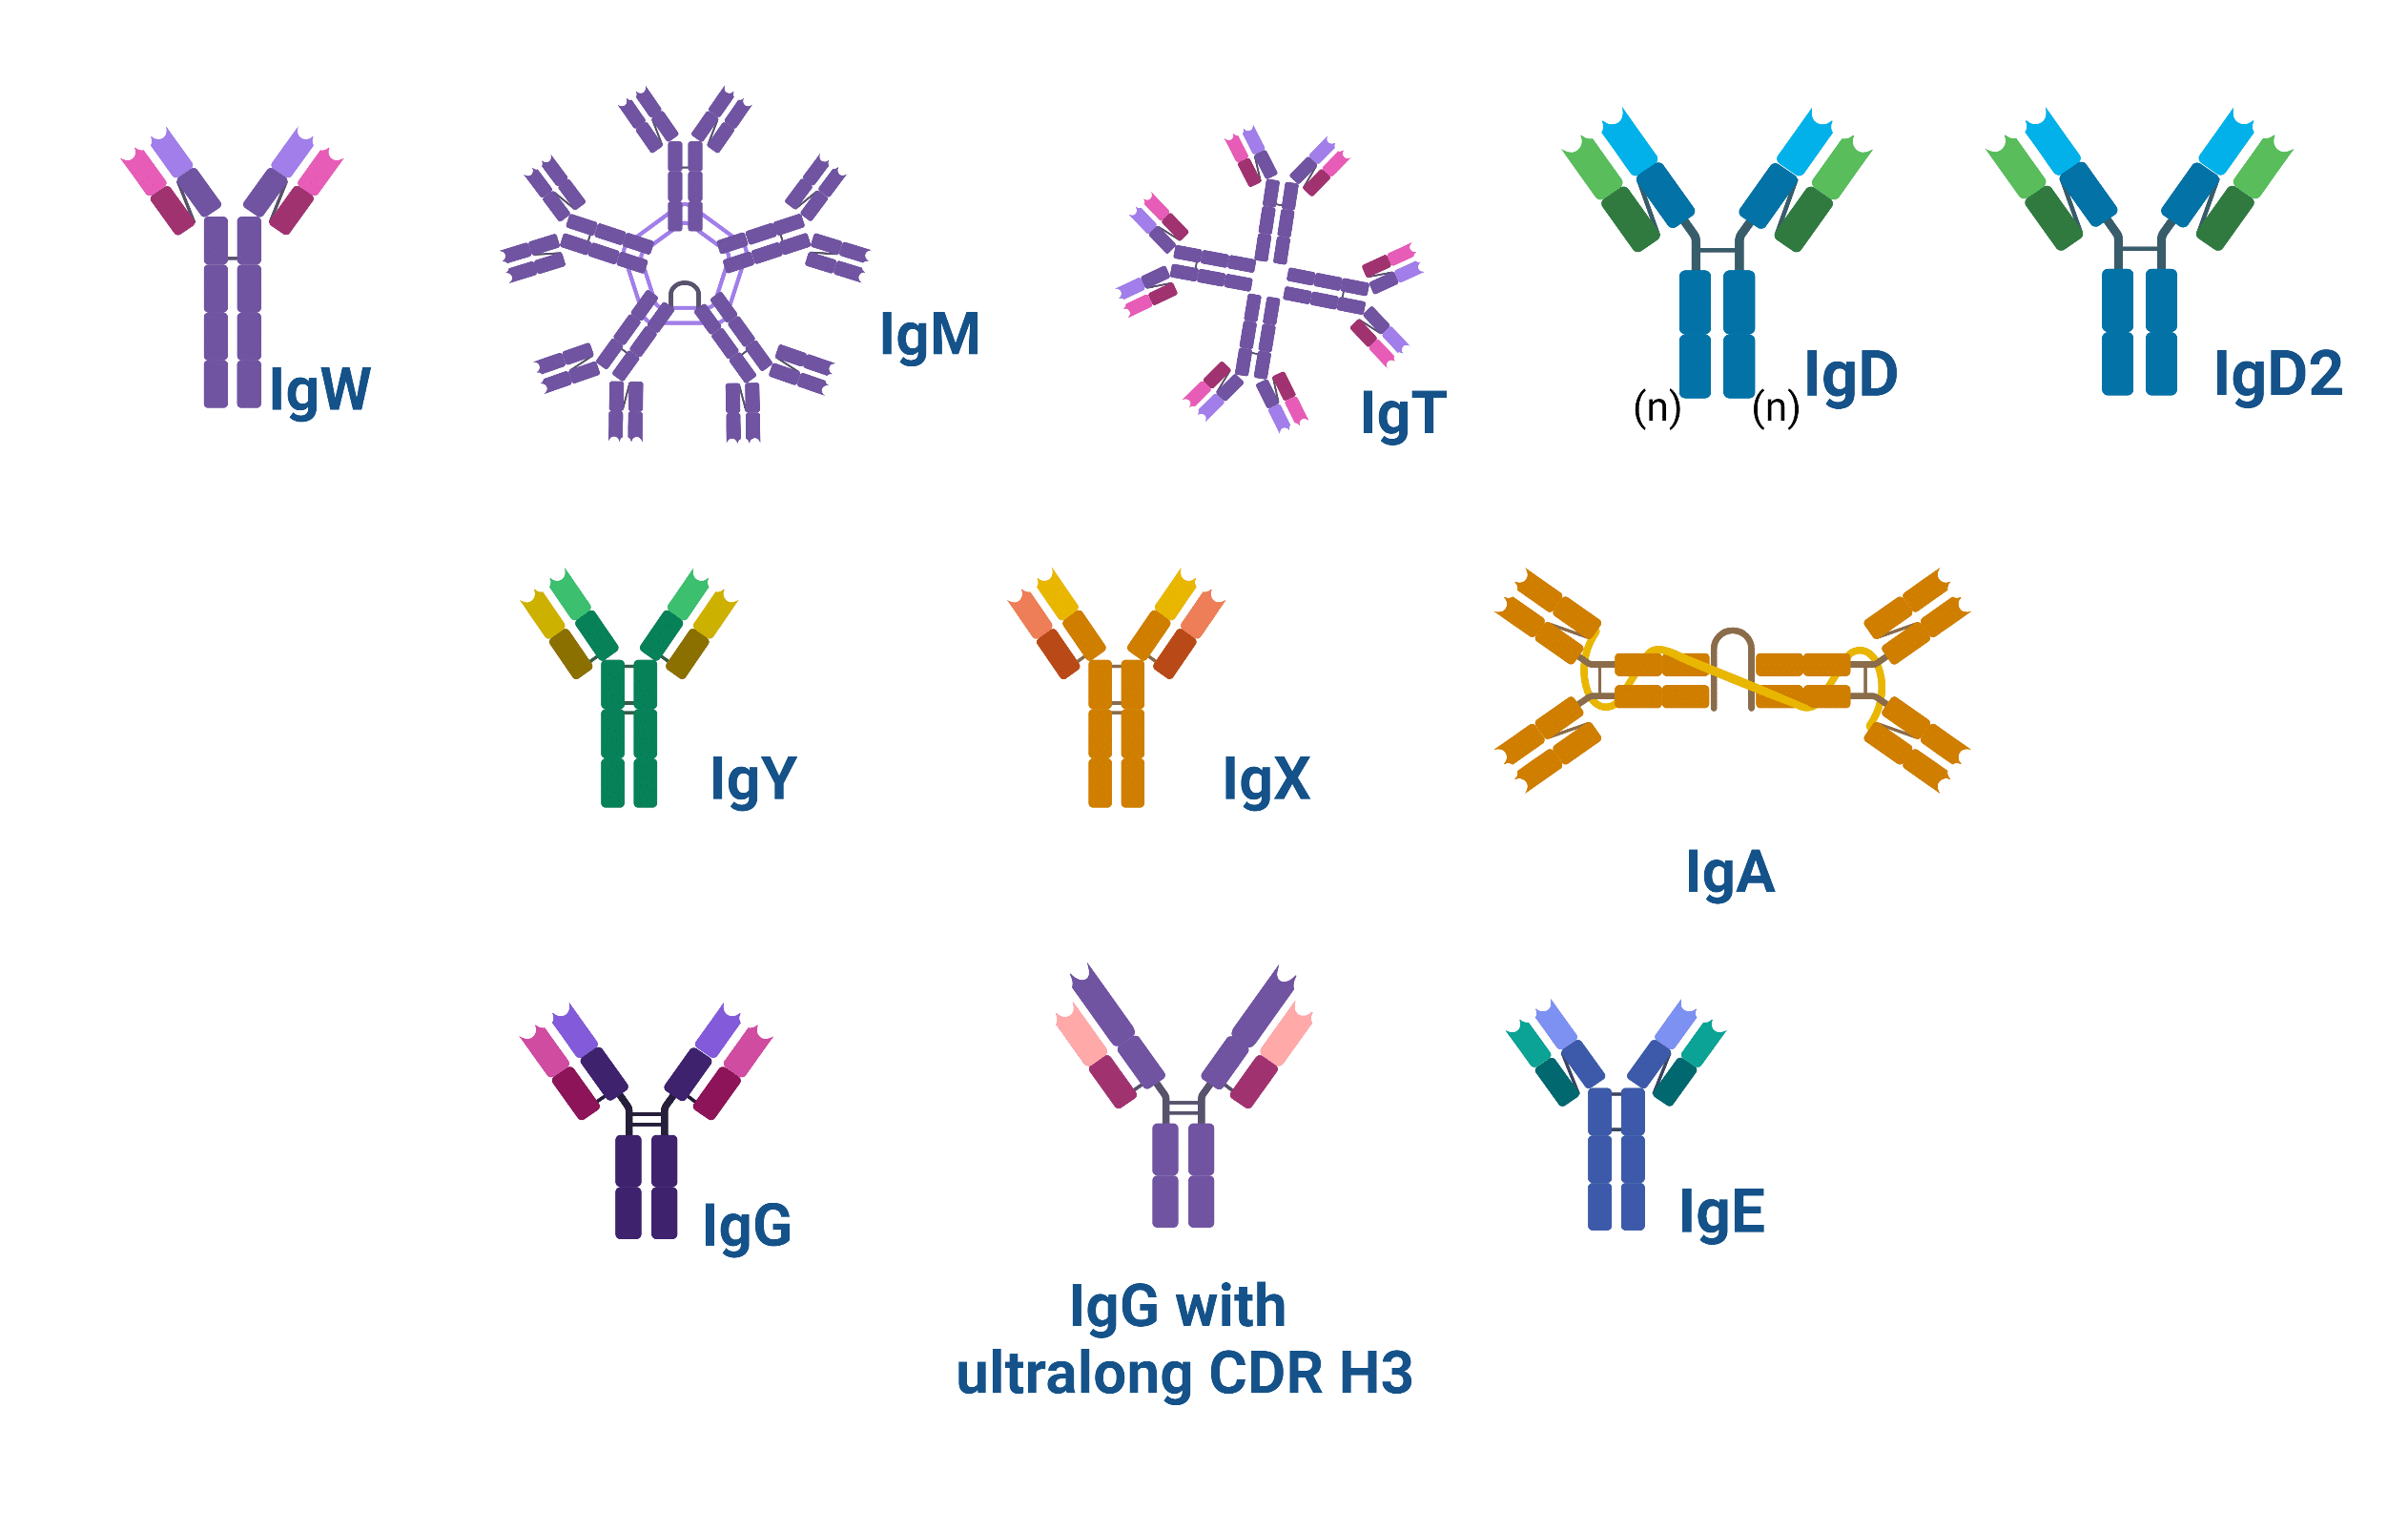 Schematic showing the structure of the types of antibodies found in nature